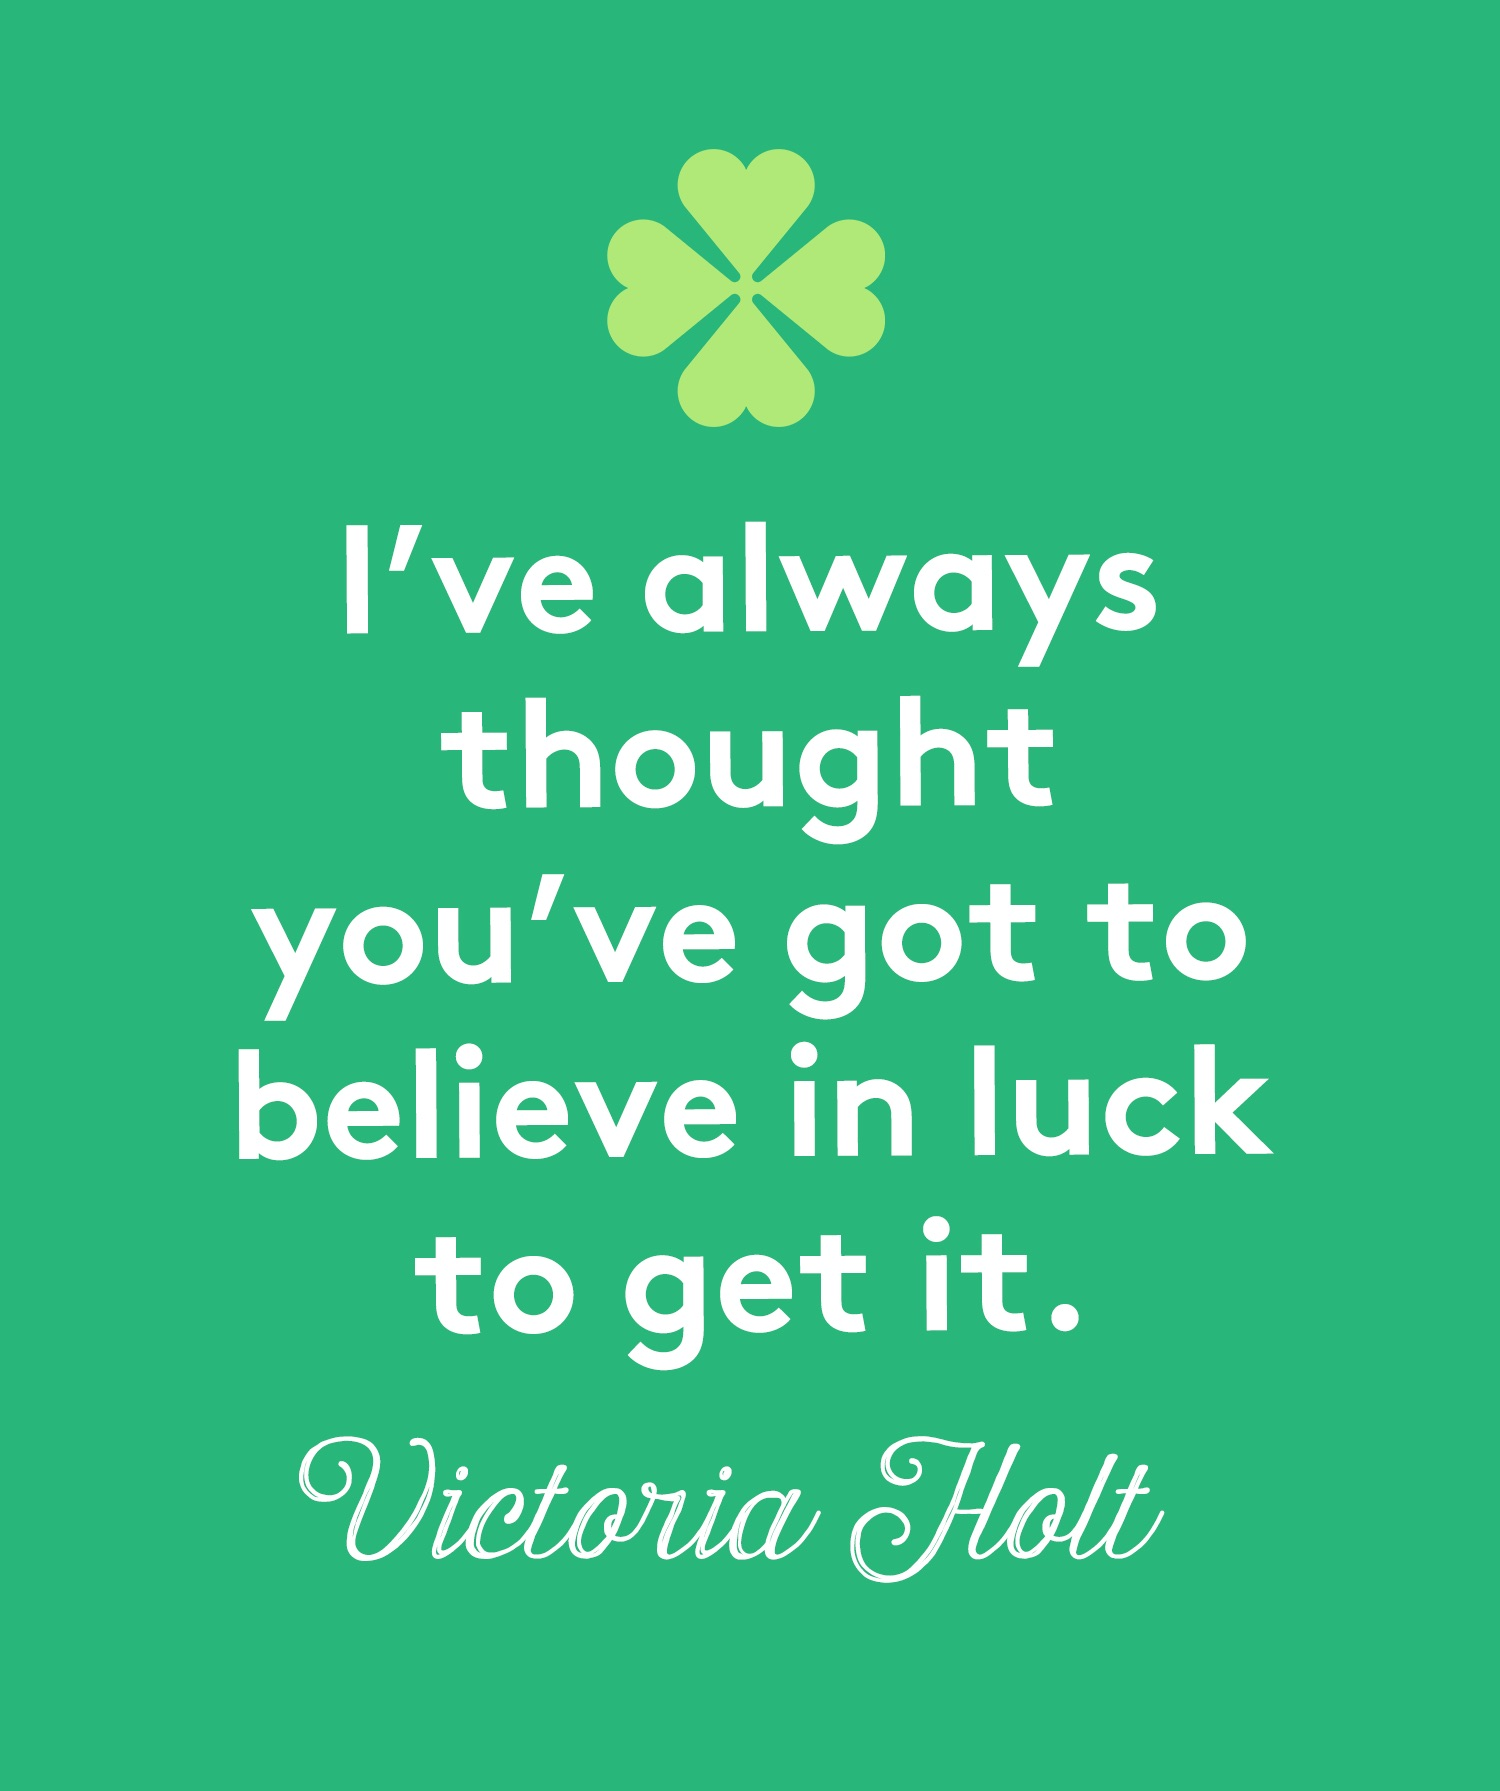 80c3bc0b2 9 St. Patrick's Day Memes and Quotes You'll Send to Everyone | Real ...